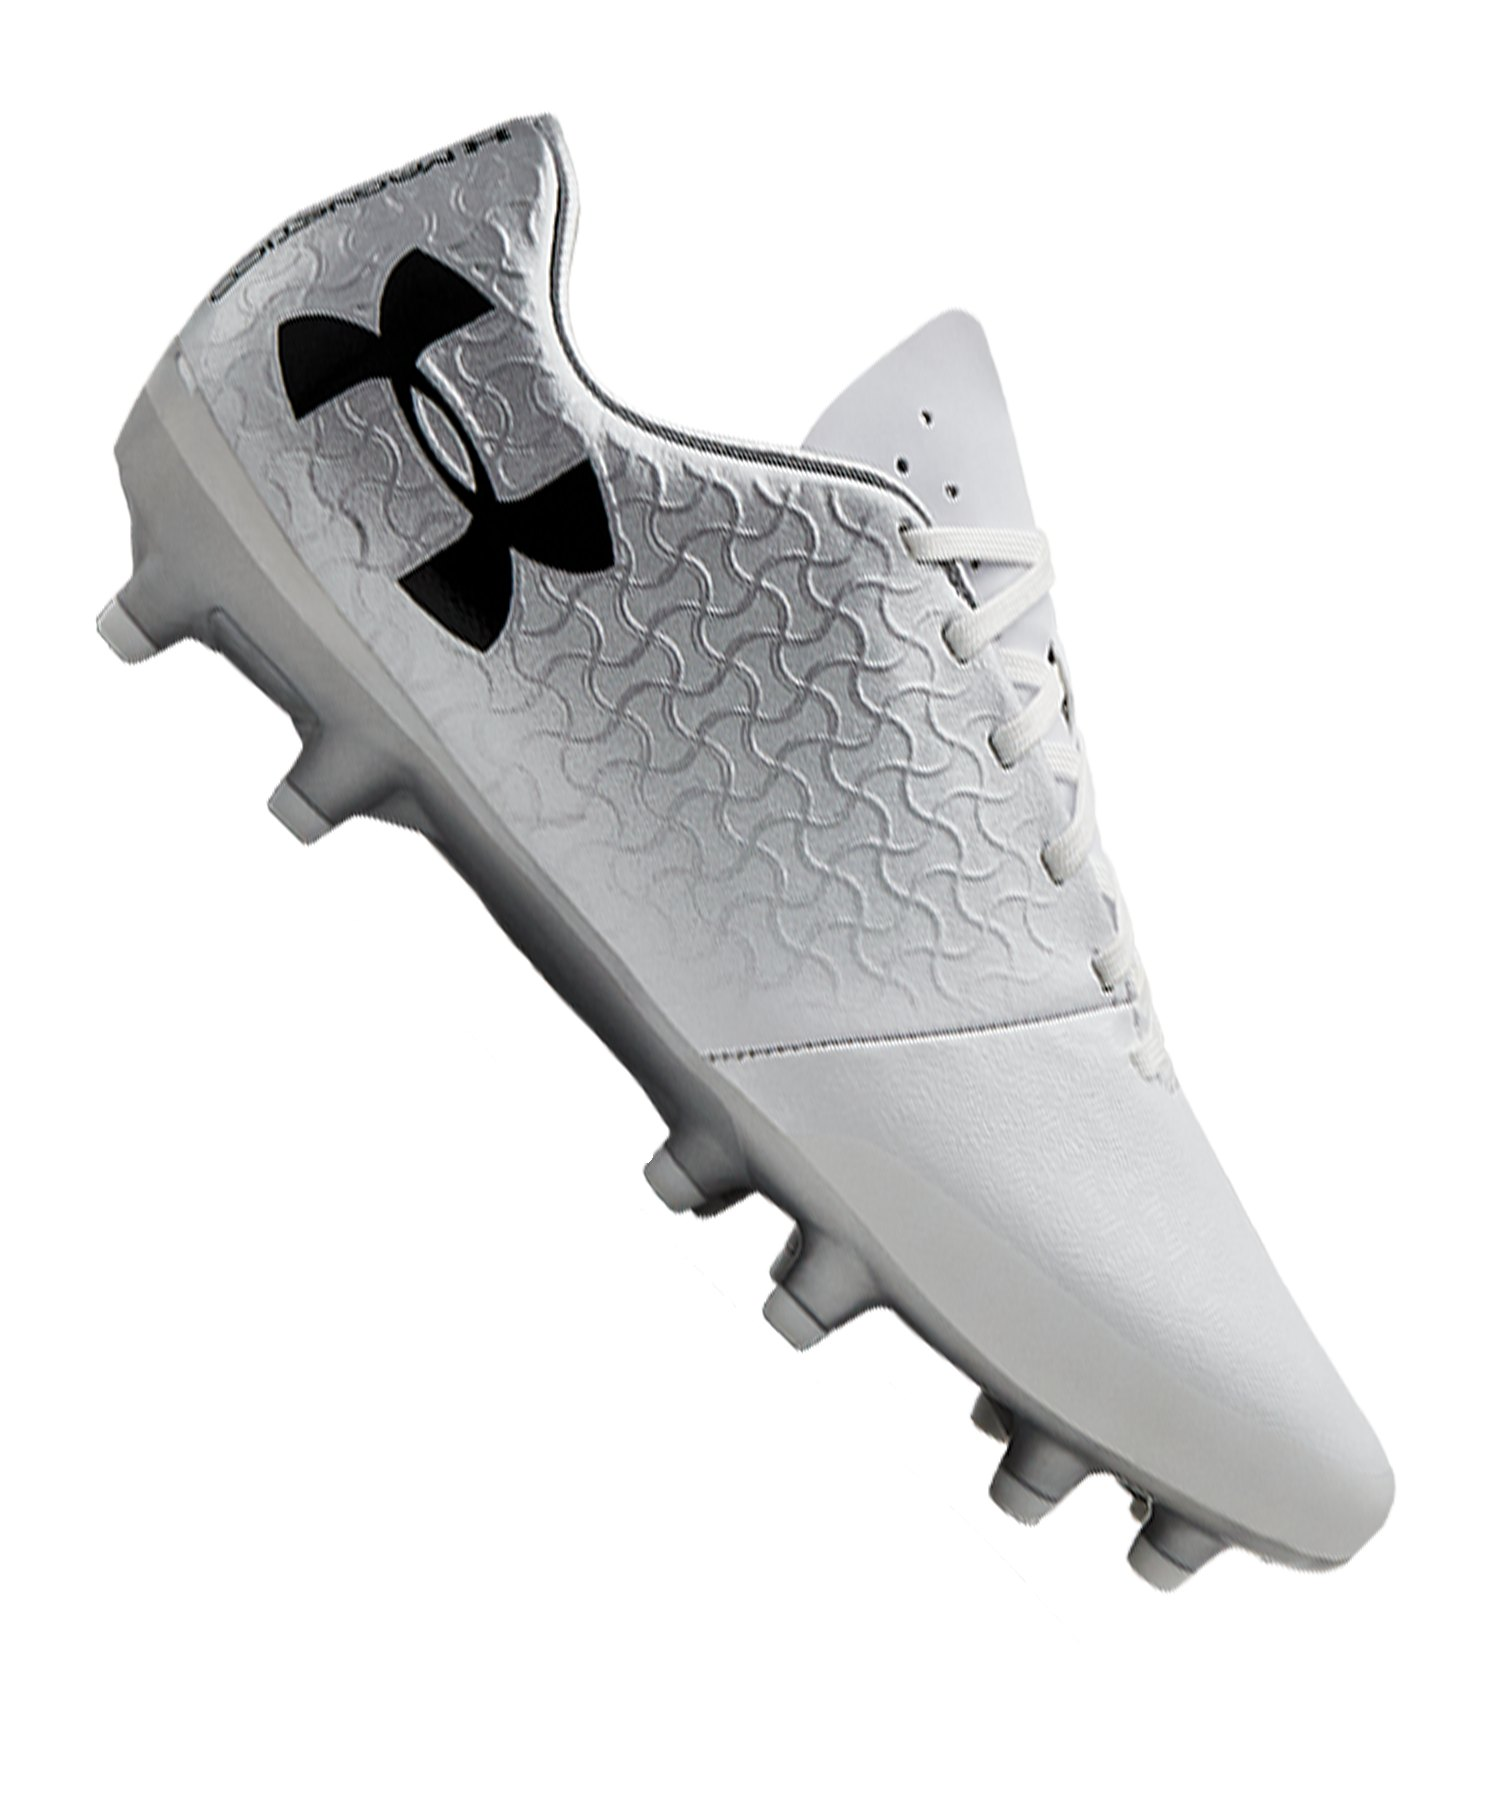 37c221126 Under Armour Magnetico Select FG Kids Weiss F100 |Kinderschuh ...